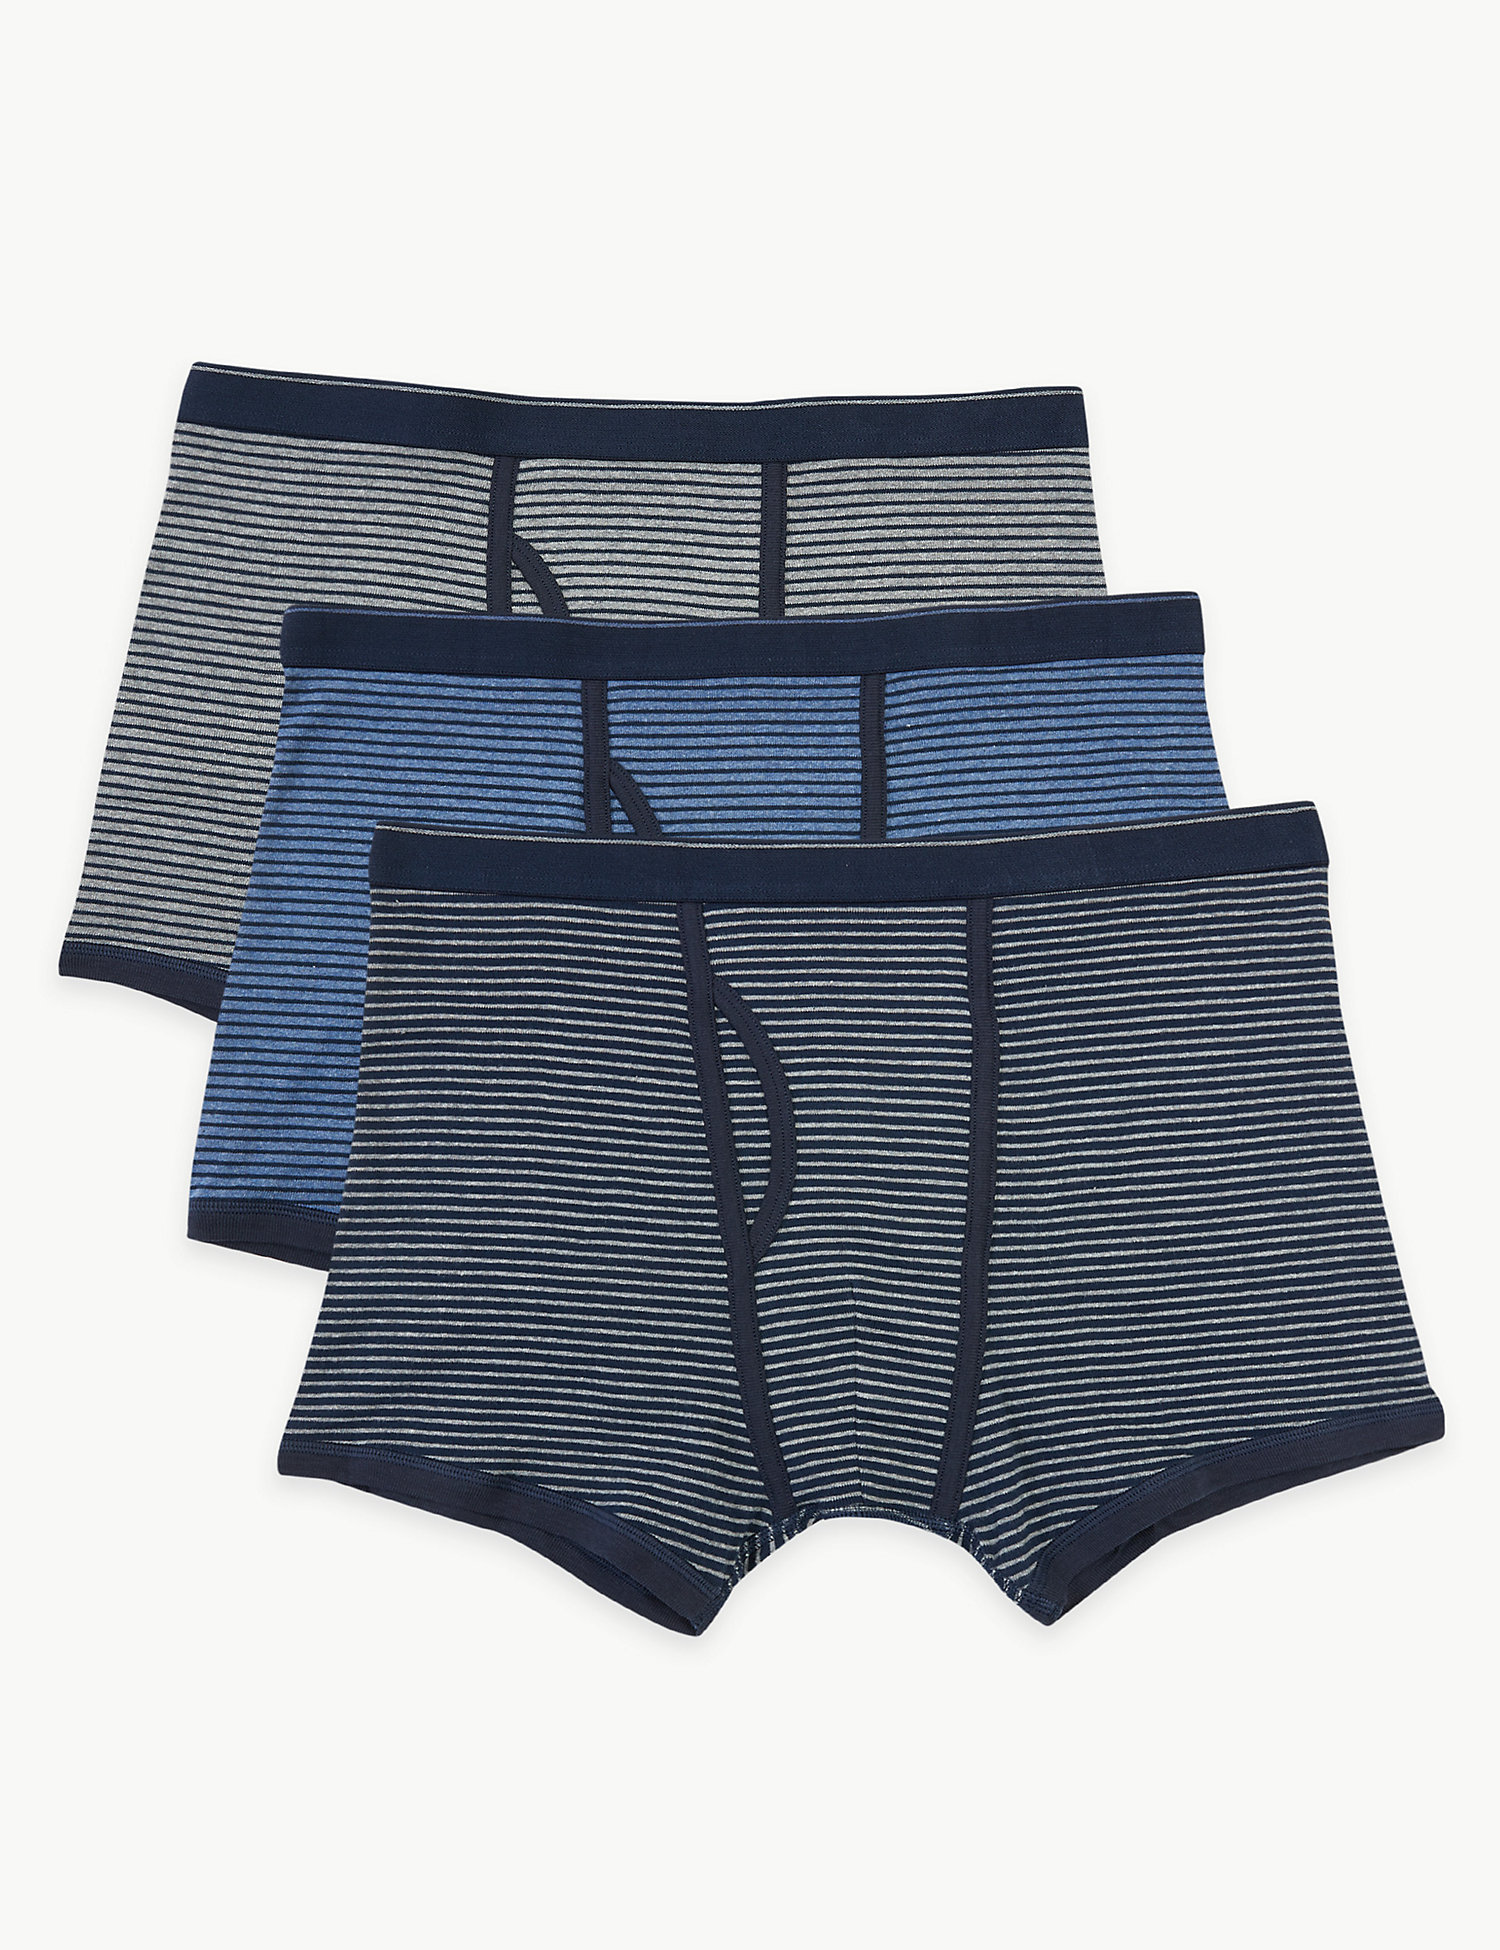 3 Pack Cotton Cool & Fresh Striped Trunks